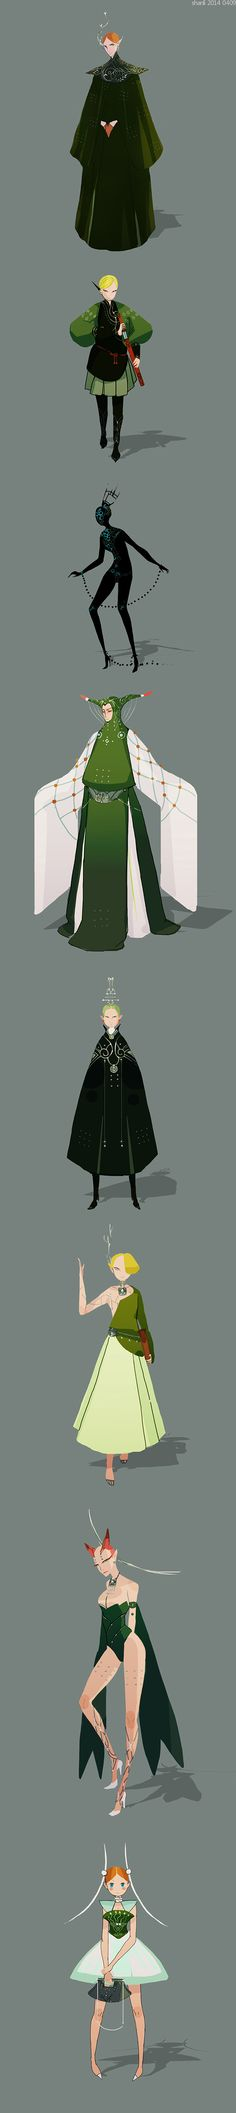 shanli by yao yao, via Behance